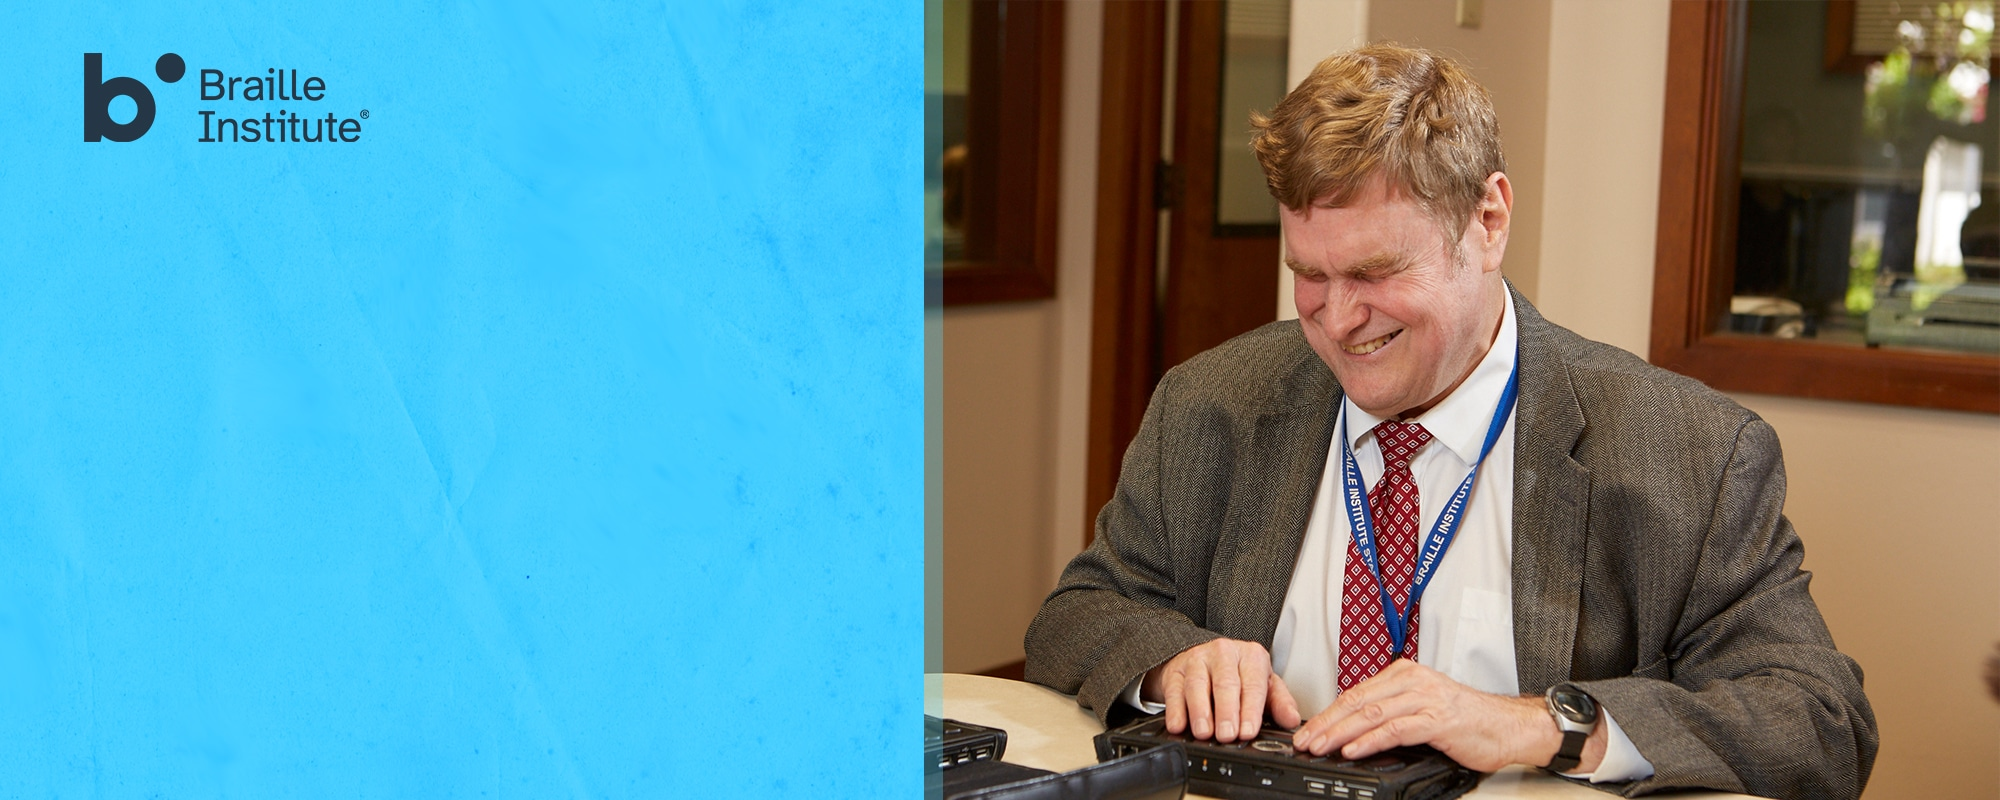 The Braille Institute logo on a light blue background and photo of a non-sighted Braille Institute instructor on a braille device